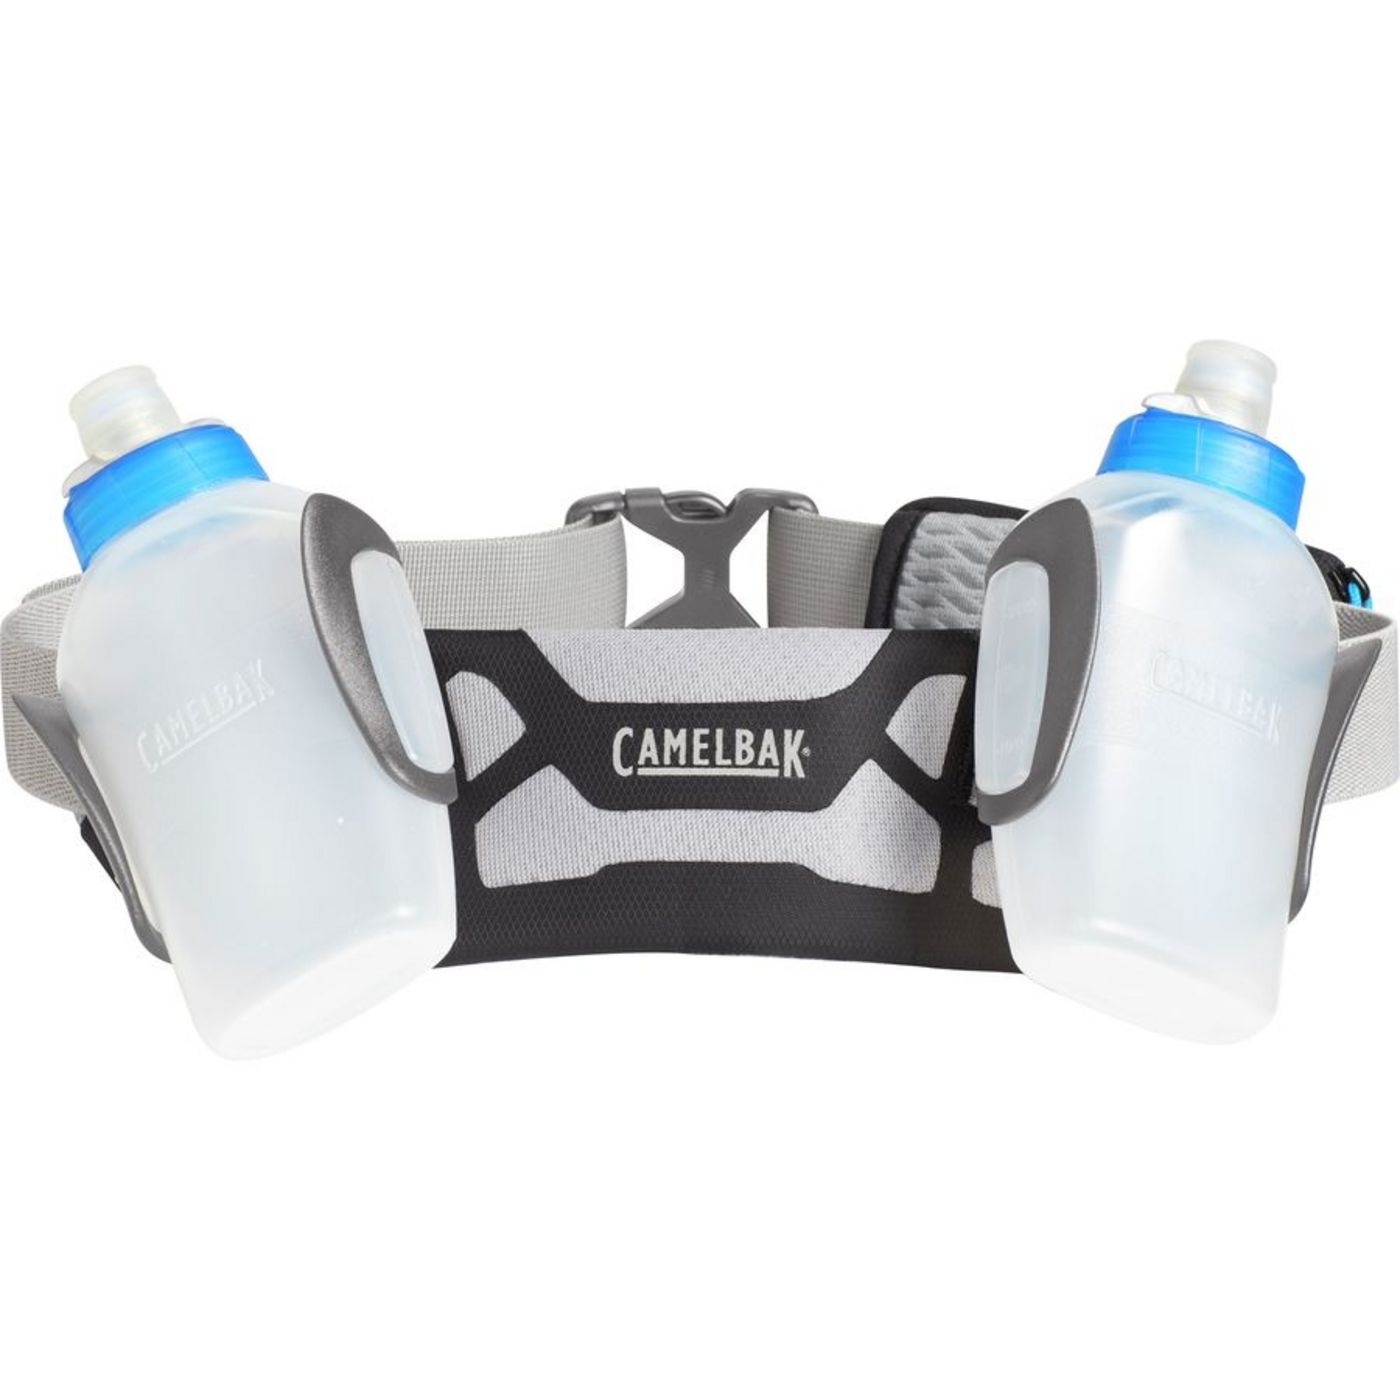 Camelbak Arc 2 Running Belt